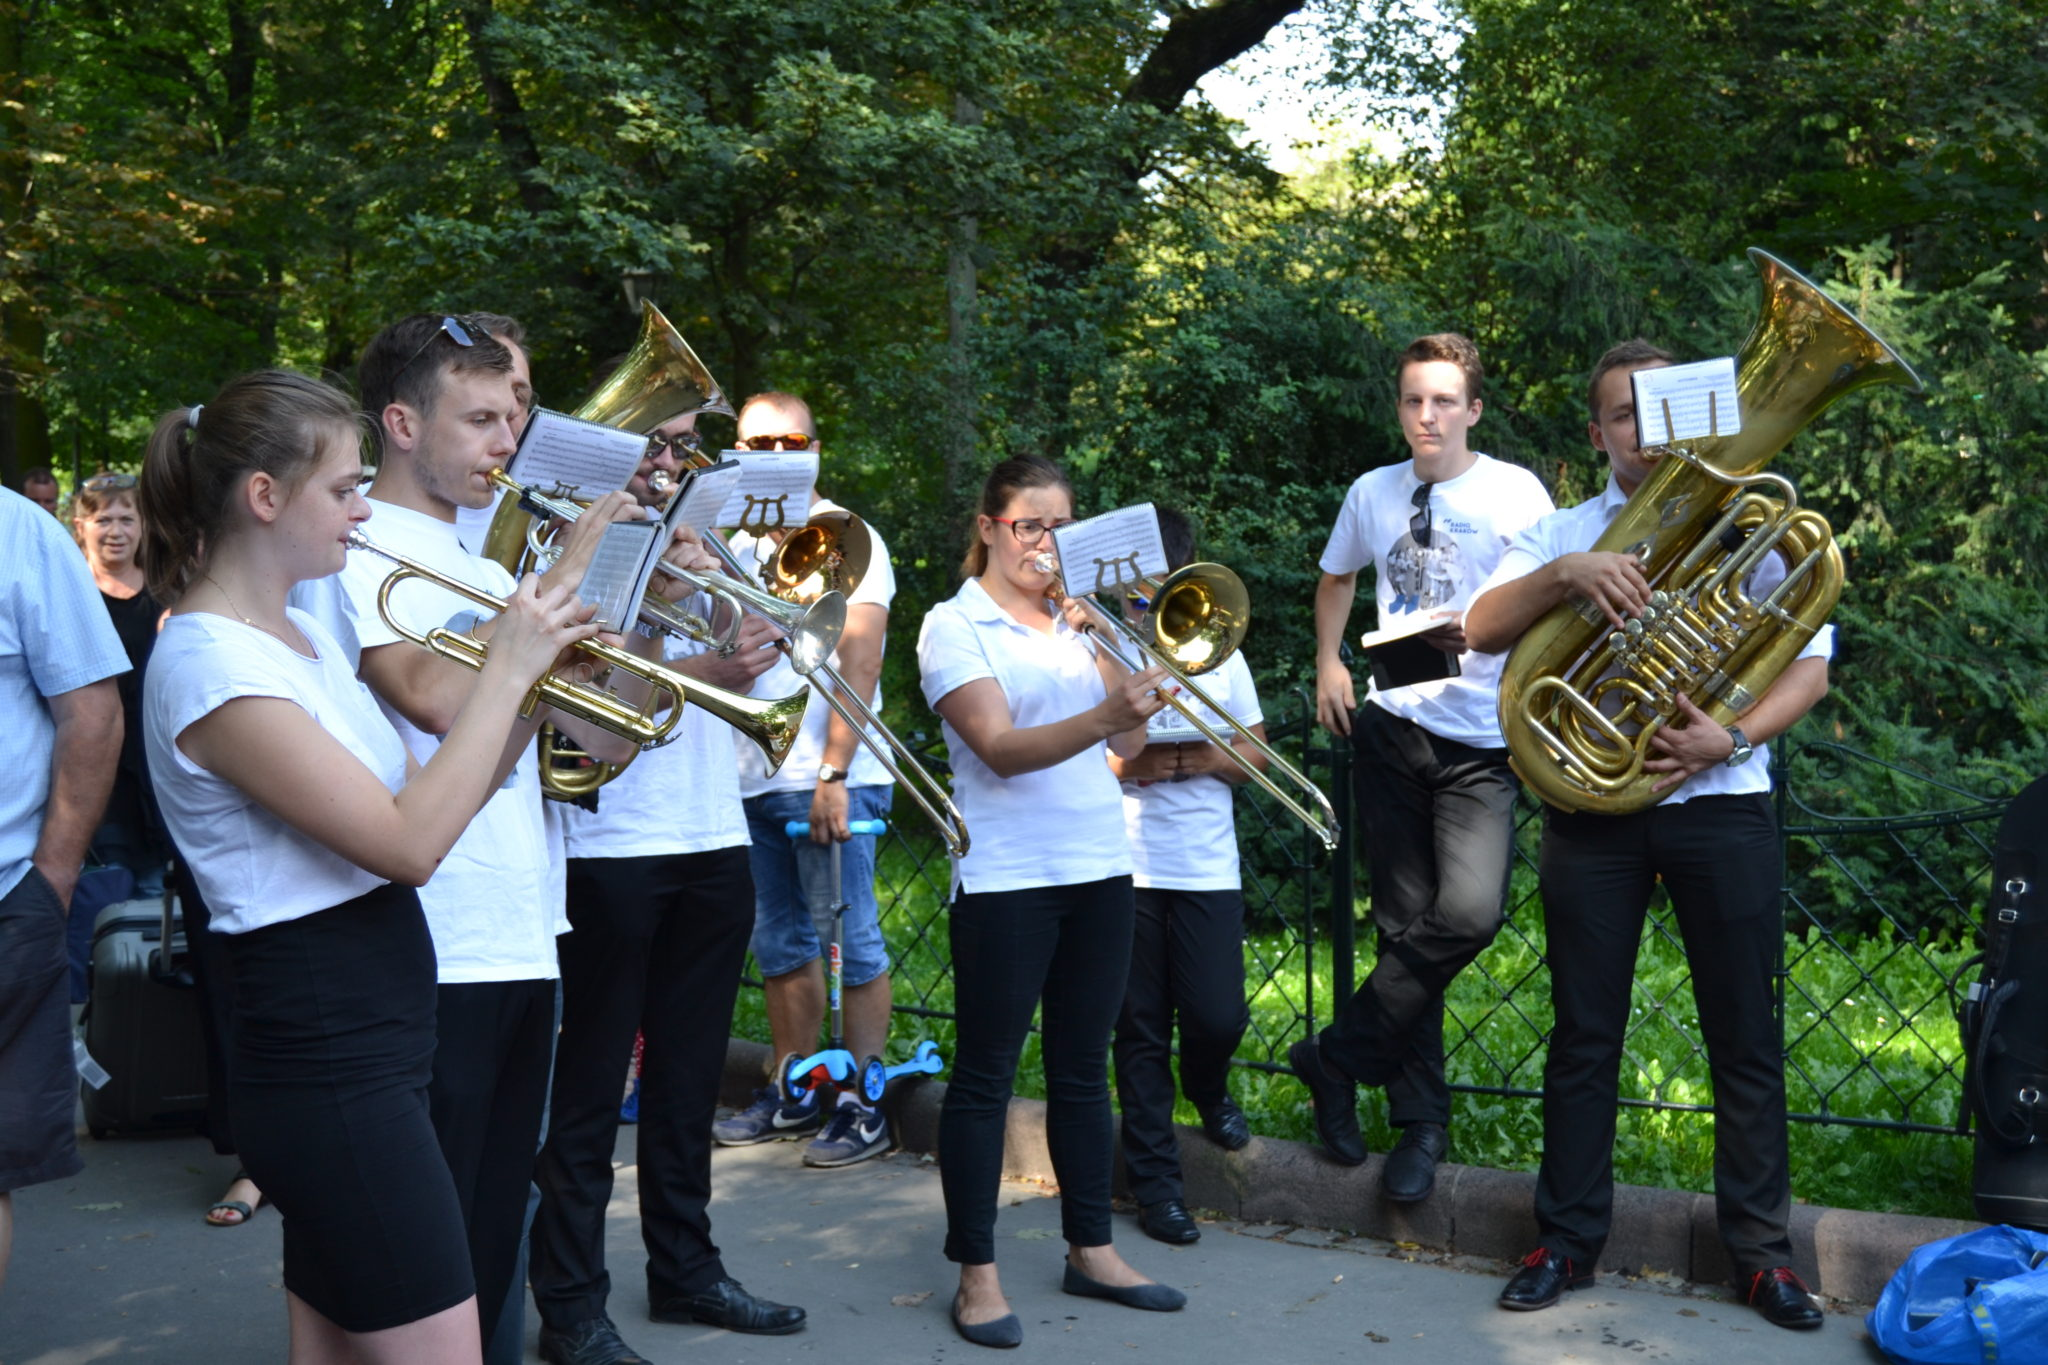 A small marching band filled the streets with John Philip Sousa melodies